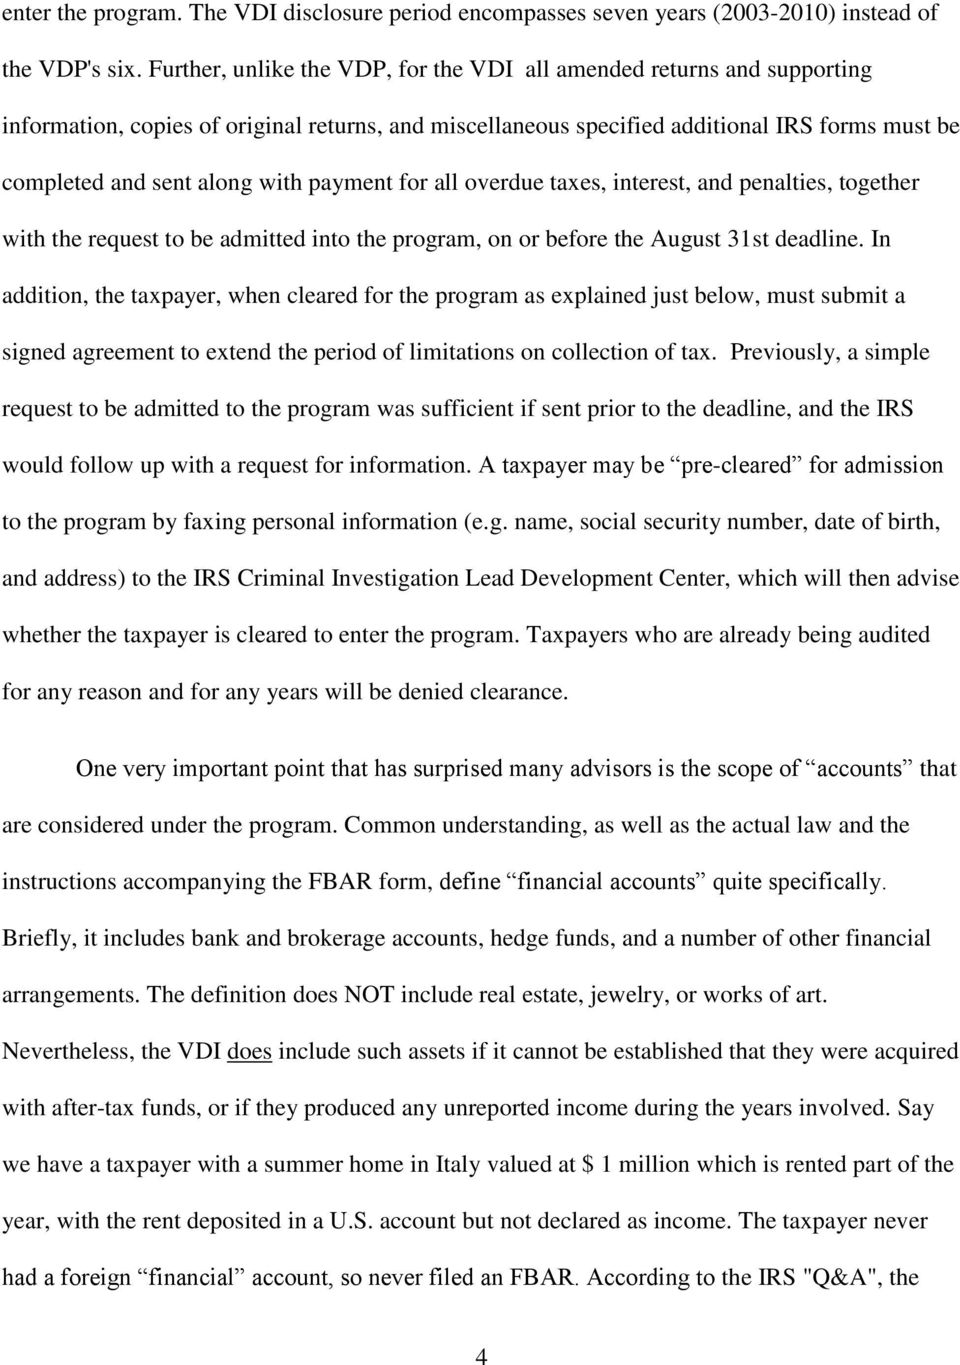 Foreign Bank Accounts An IRS Offer You Can t Refuse - PDF